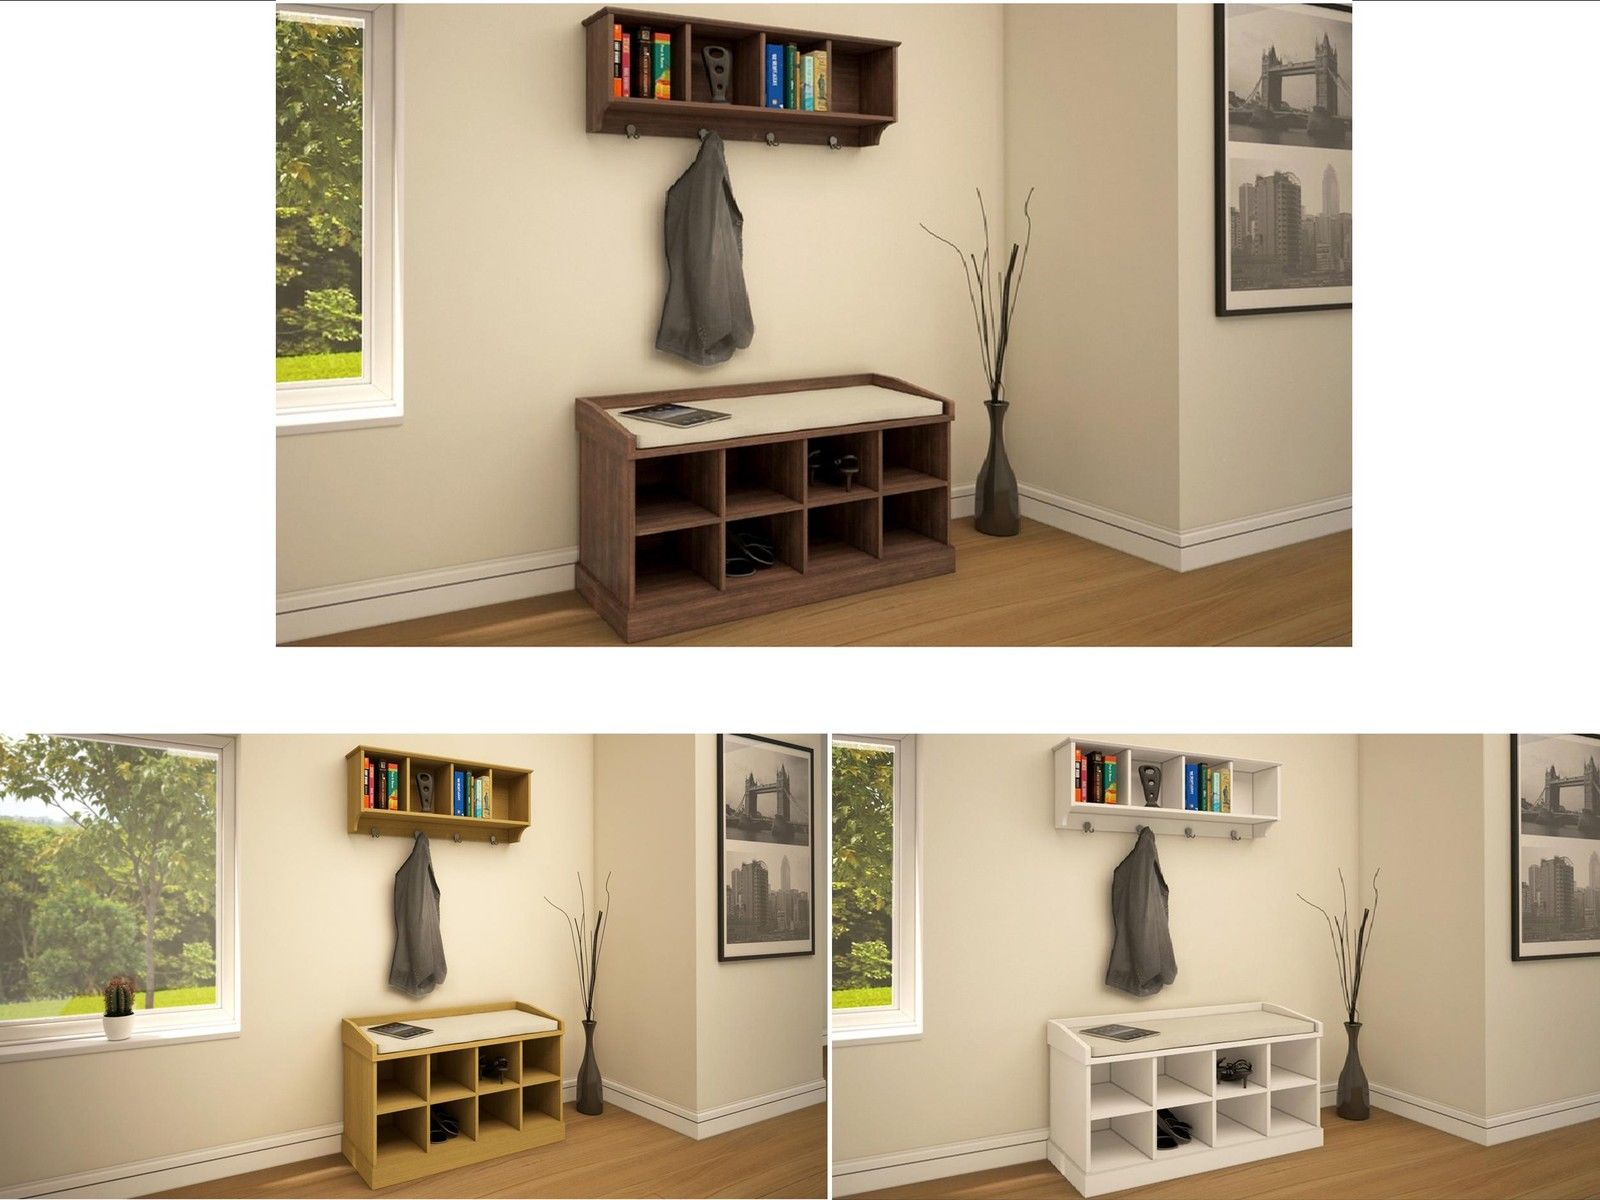 new styles 21224 dc198 Details about Hallway Furniture Storage Bench & Wall Storage Shelf Rack  with Coat Hooks